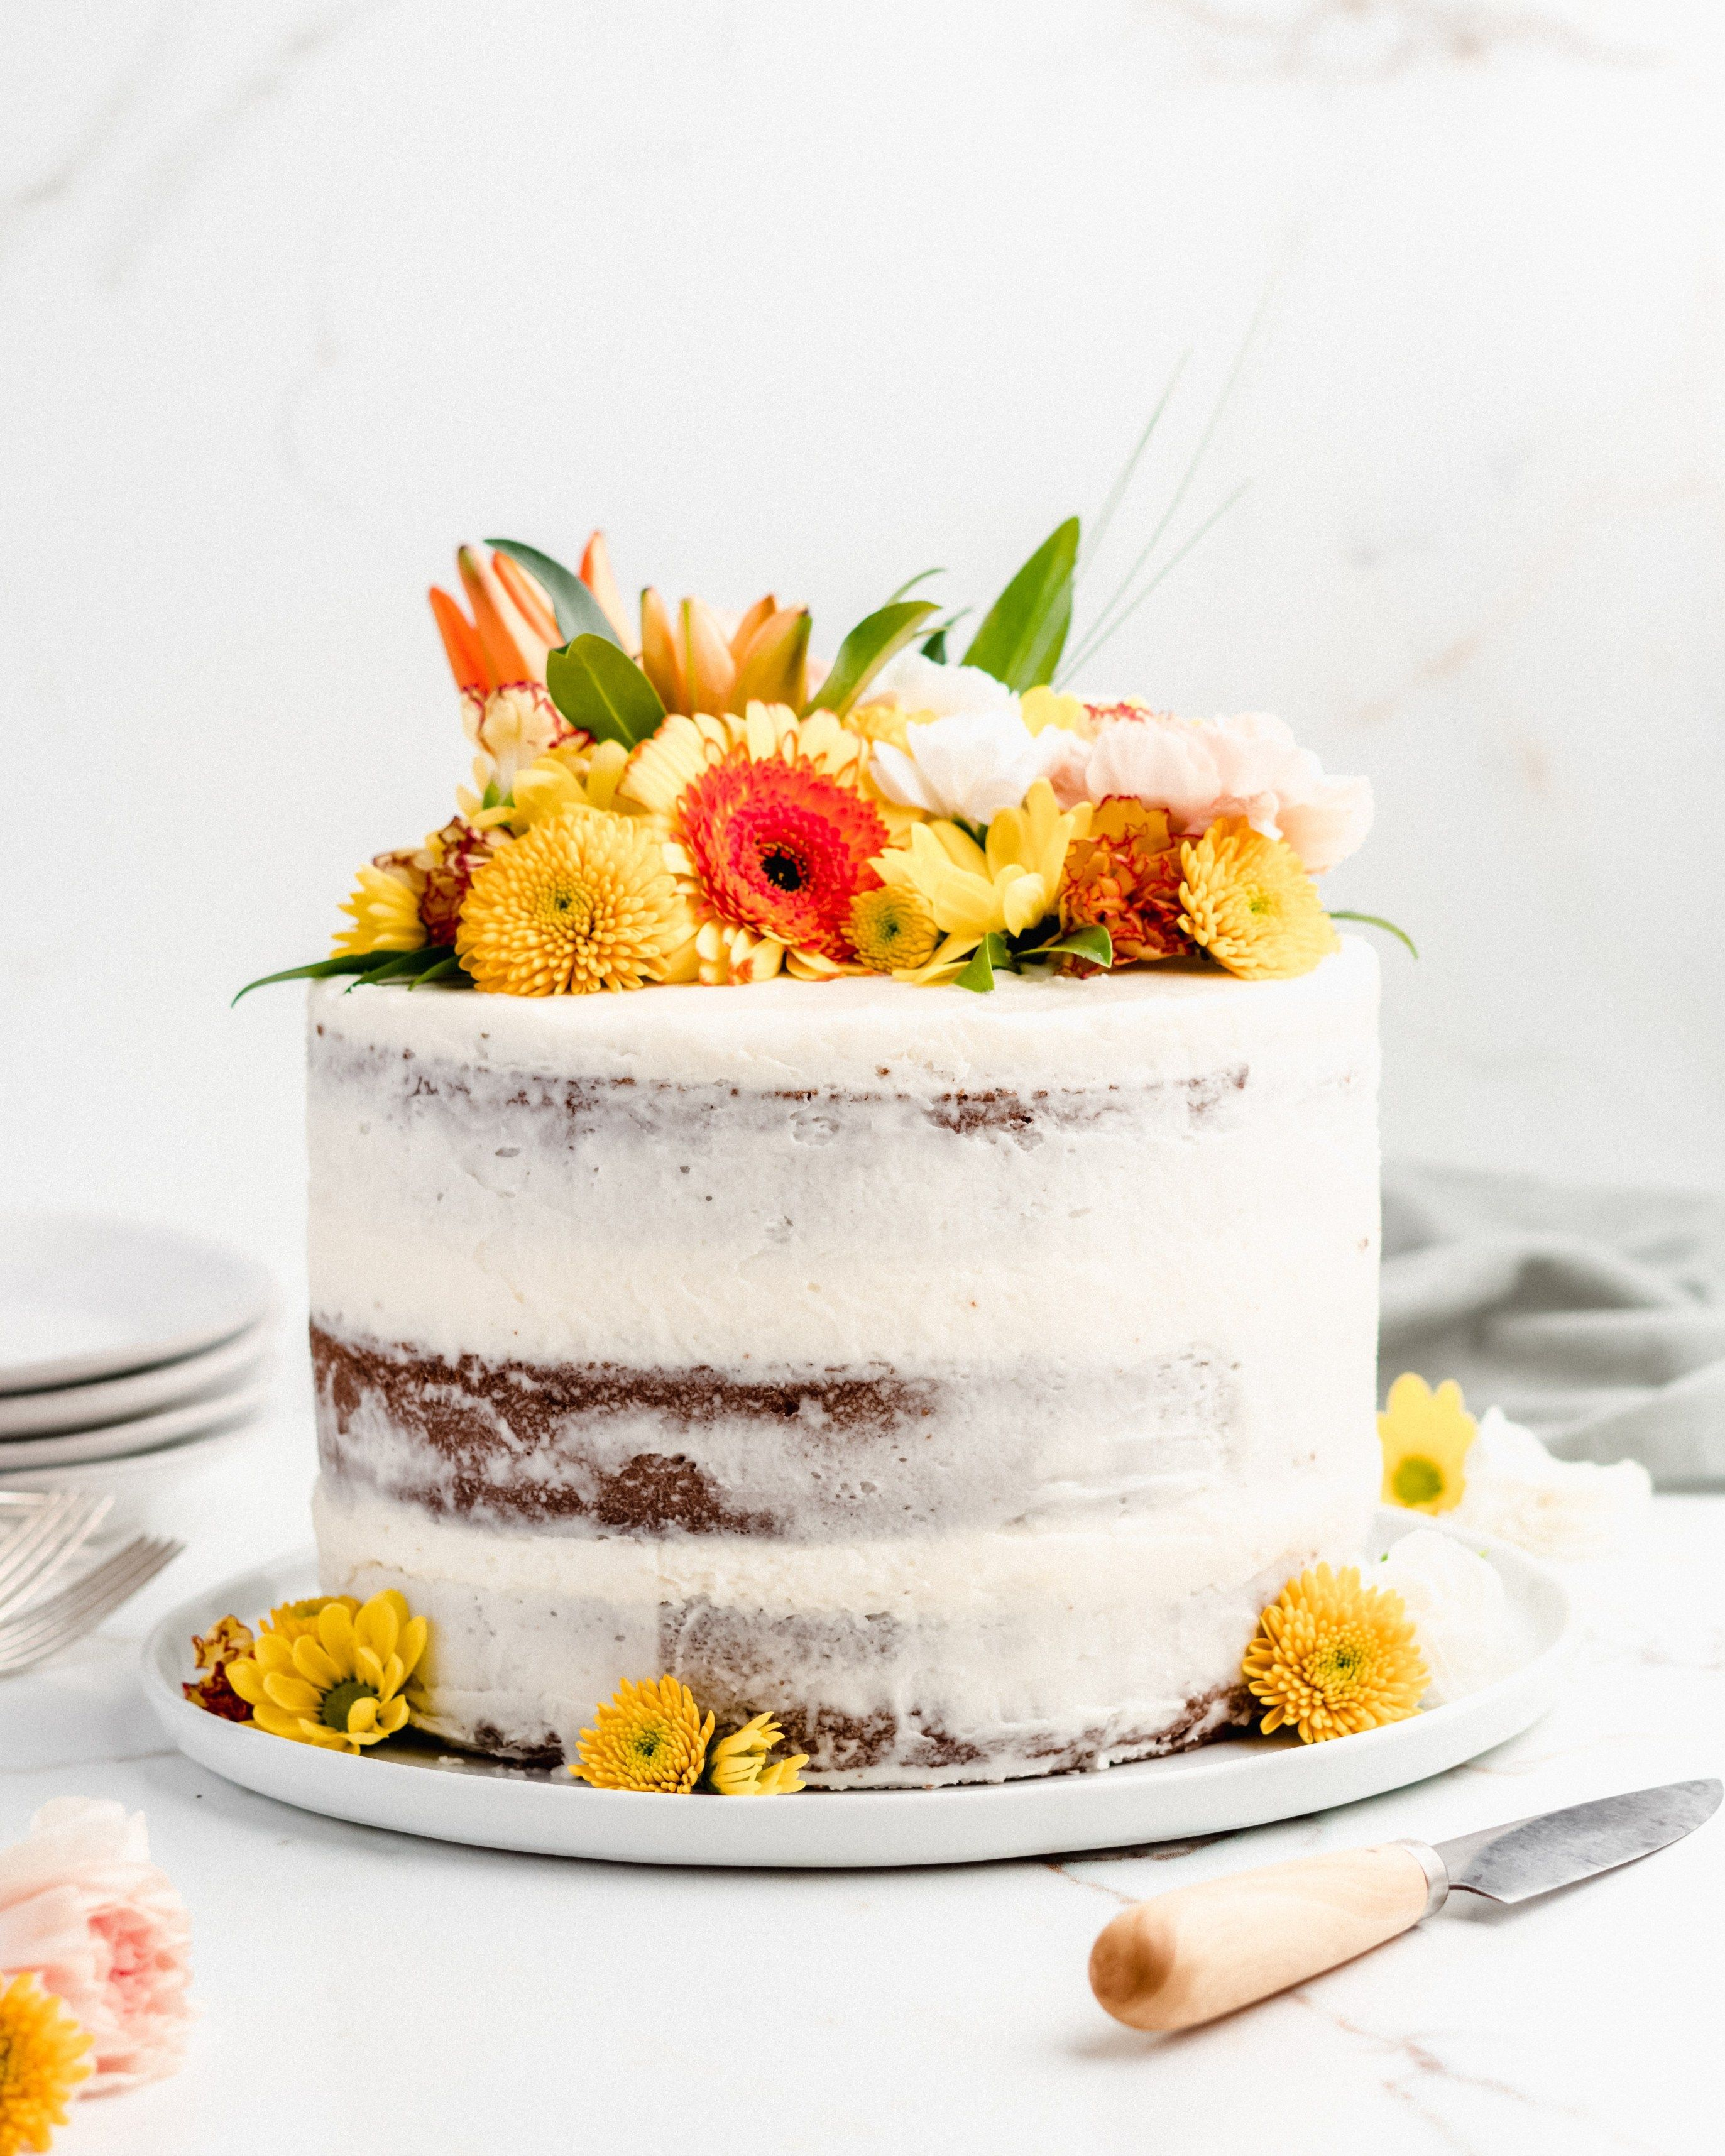 Ultra Moist Carrot Cake With Cream Cheese Frosting Food Duchess Recipe Cream Cheese Frosting Cake With Cream Cheese Pistachio Cake